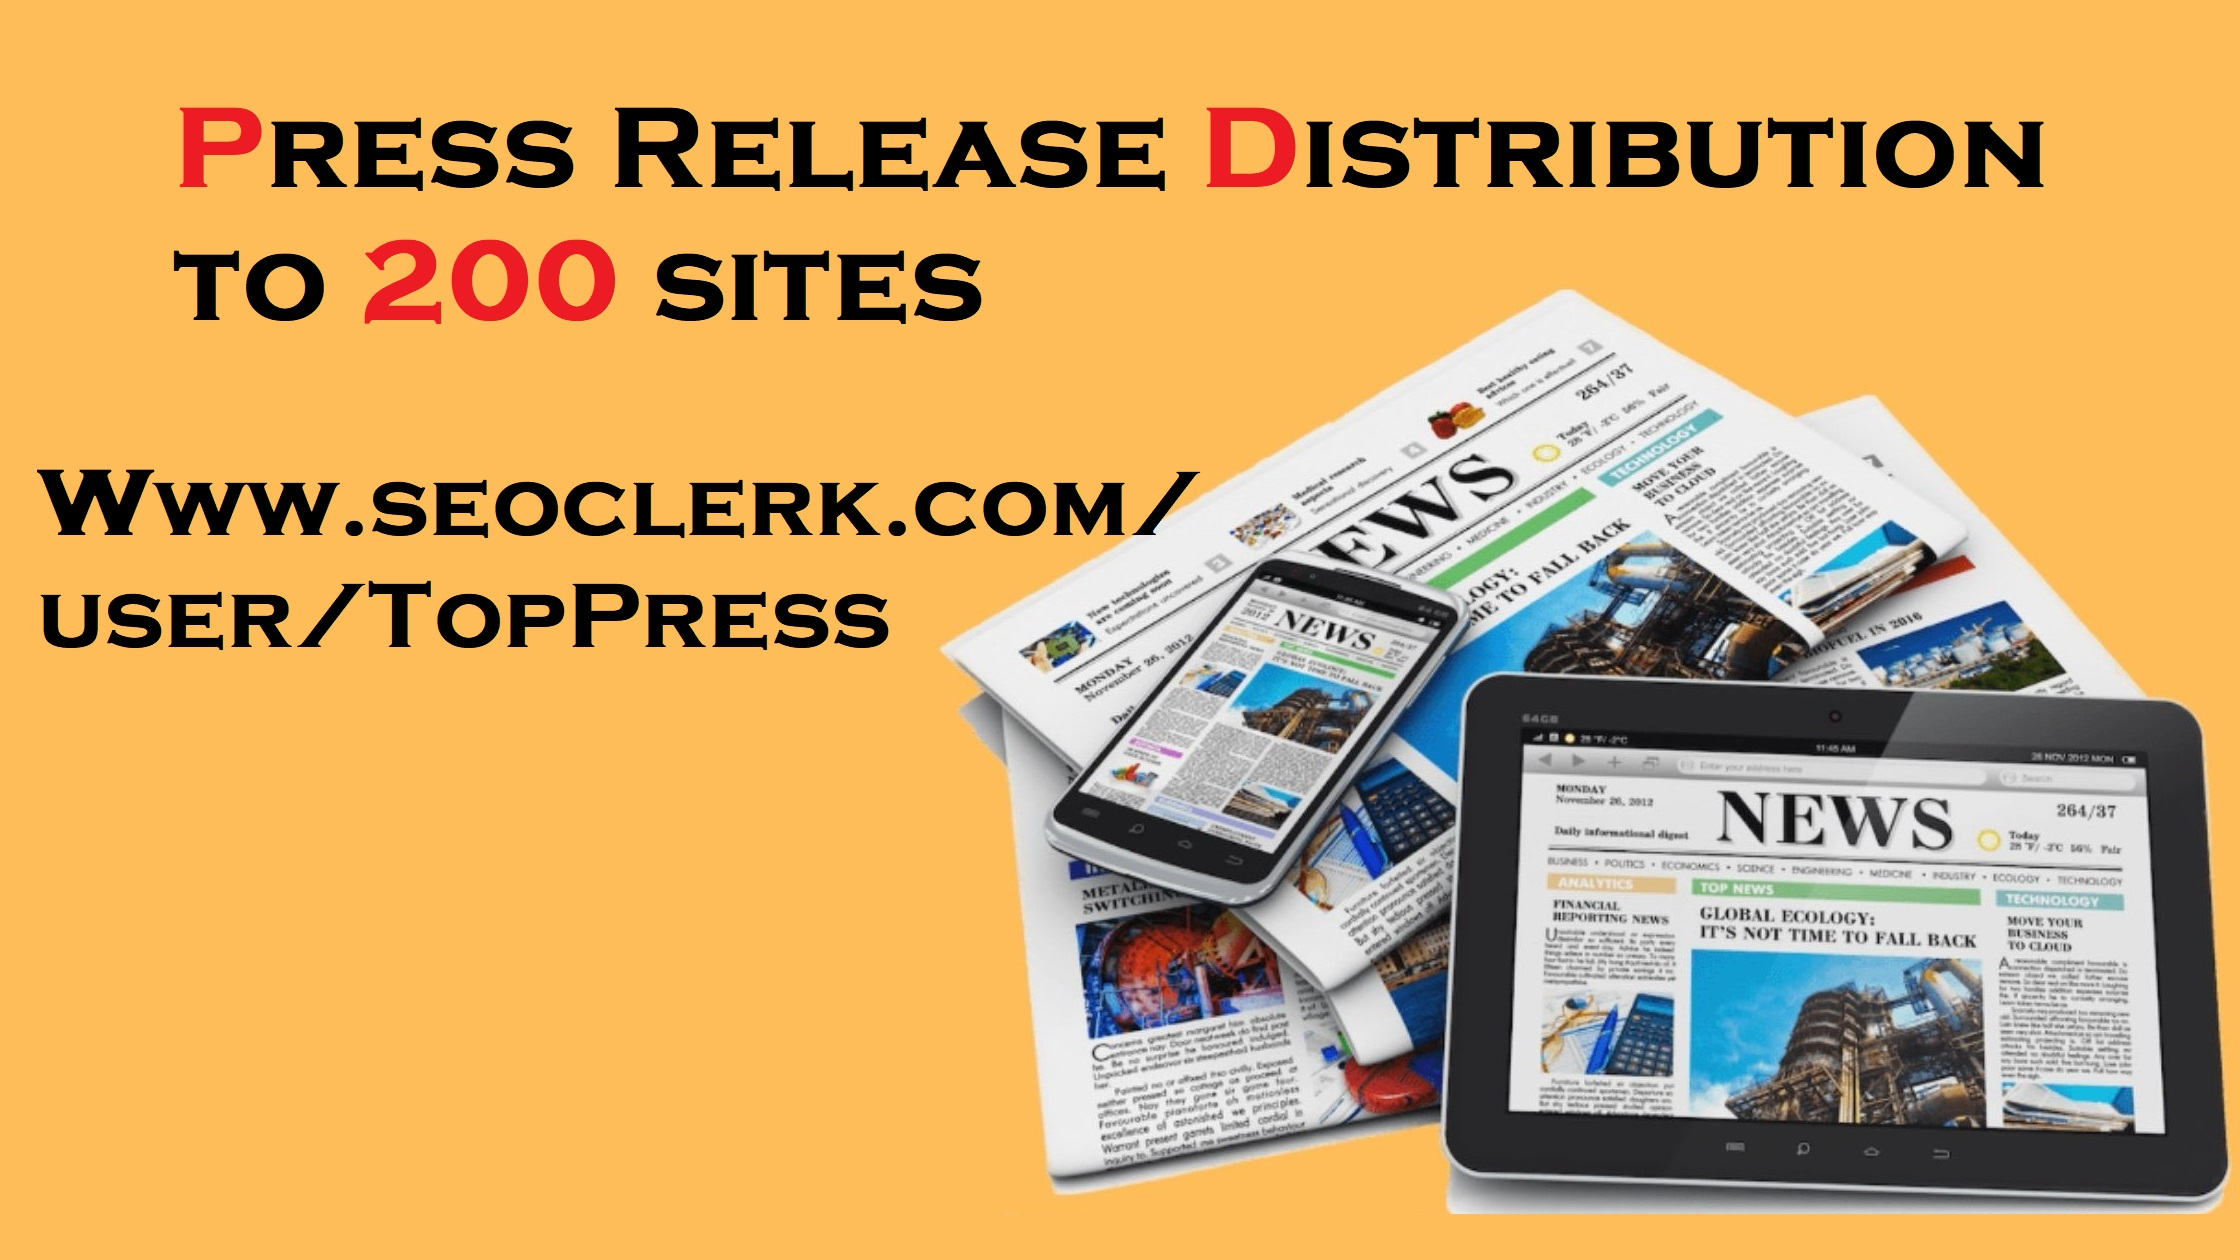 Press Release Distribution to 200 Websites